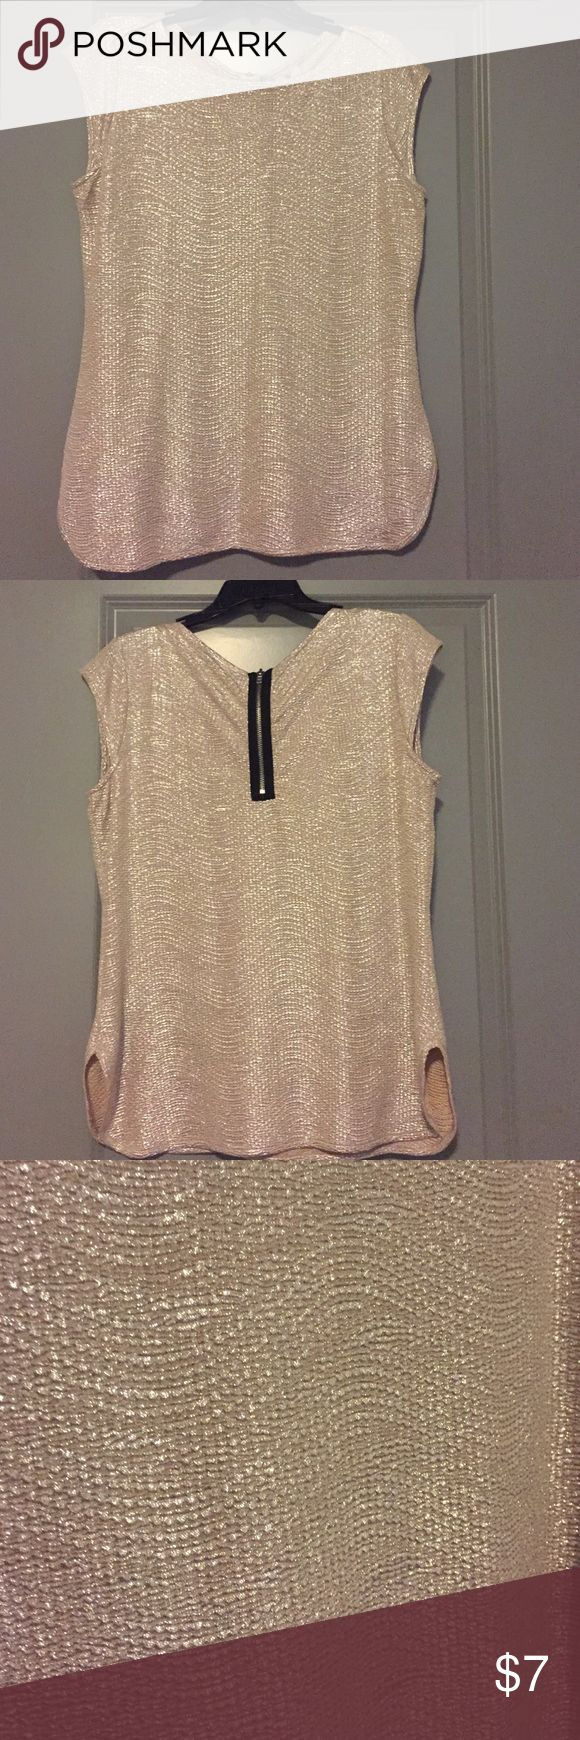 Gold cap-sleeve top with zipper back. Gold cap-sleeve top with zipper back.  Perfect for holiday parties! 100% polyester. Like brand new! Worthington Tops Blouses